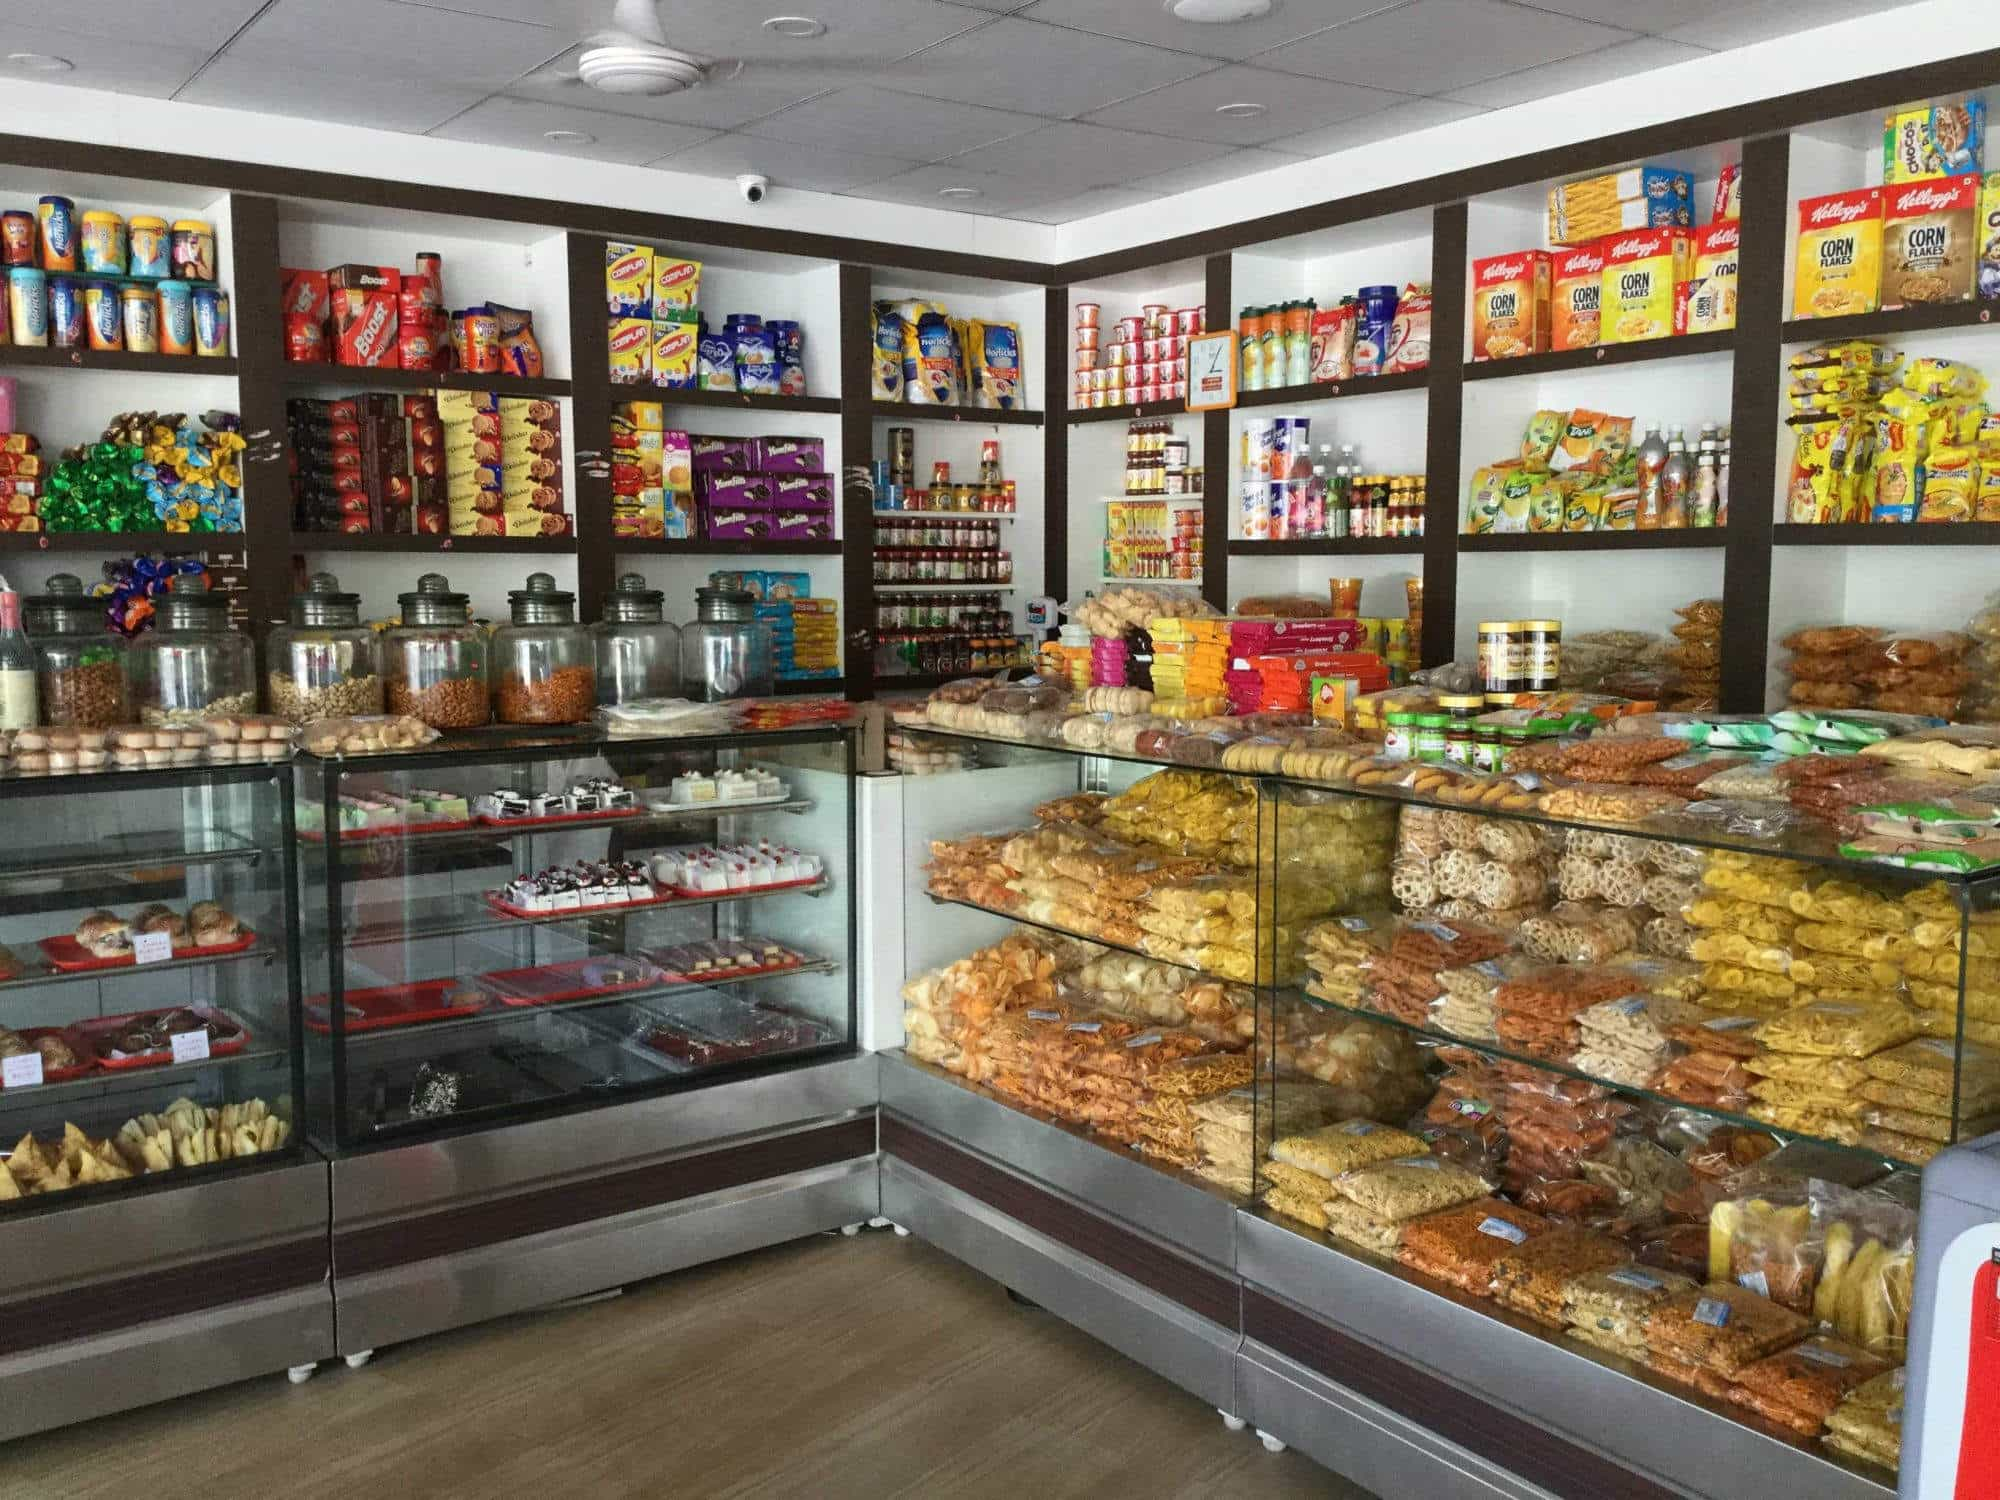 Indian Bakers Cheranallur Ernakulam South Indian Cuisine Restaurant Justdial